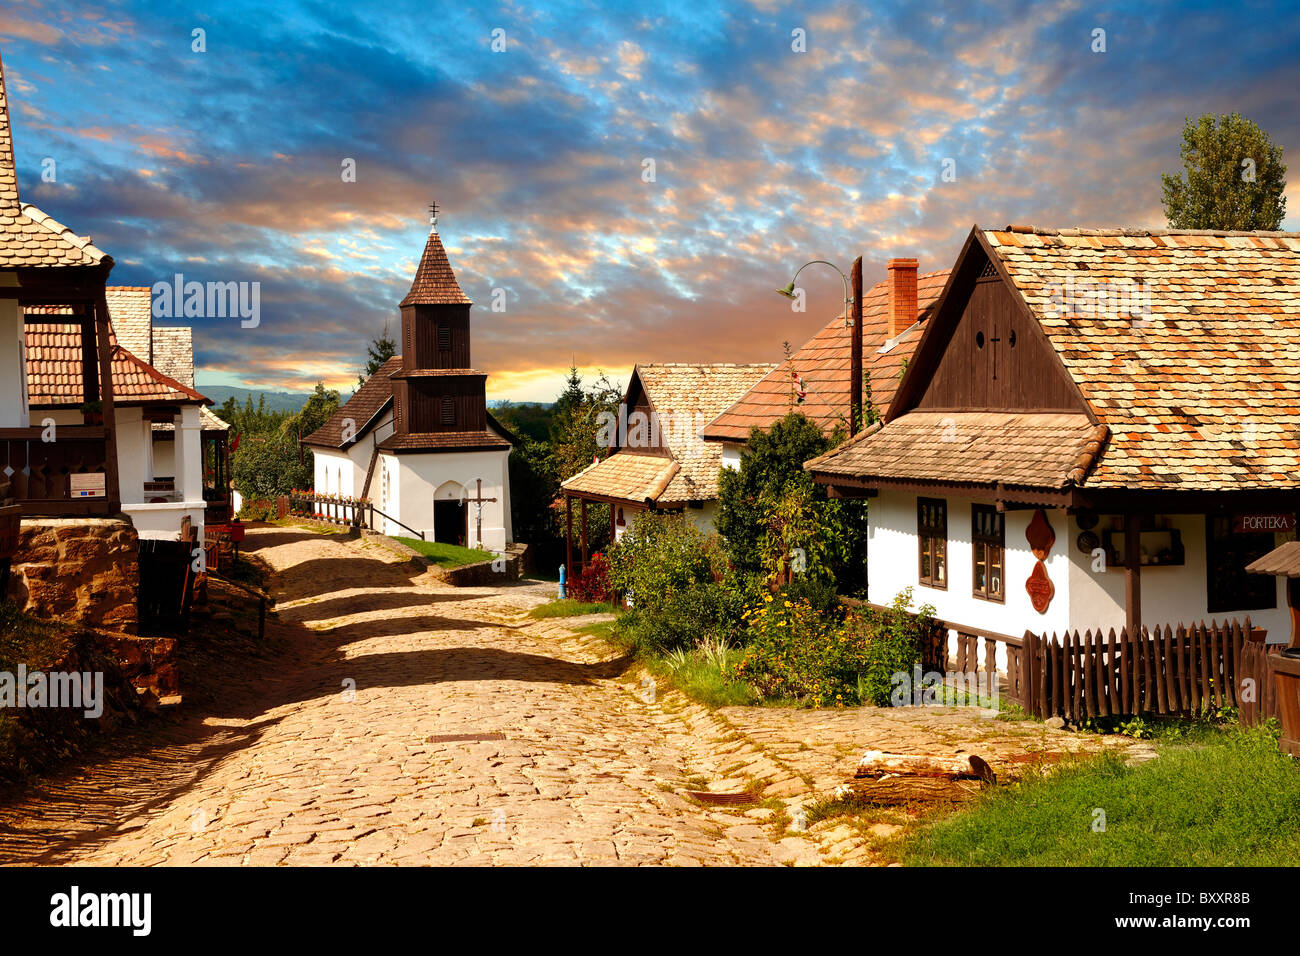 Main Street of Hollókő ( Holoko ) Paloc ethnographic village. Hungary - Stock Image